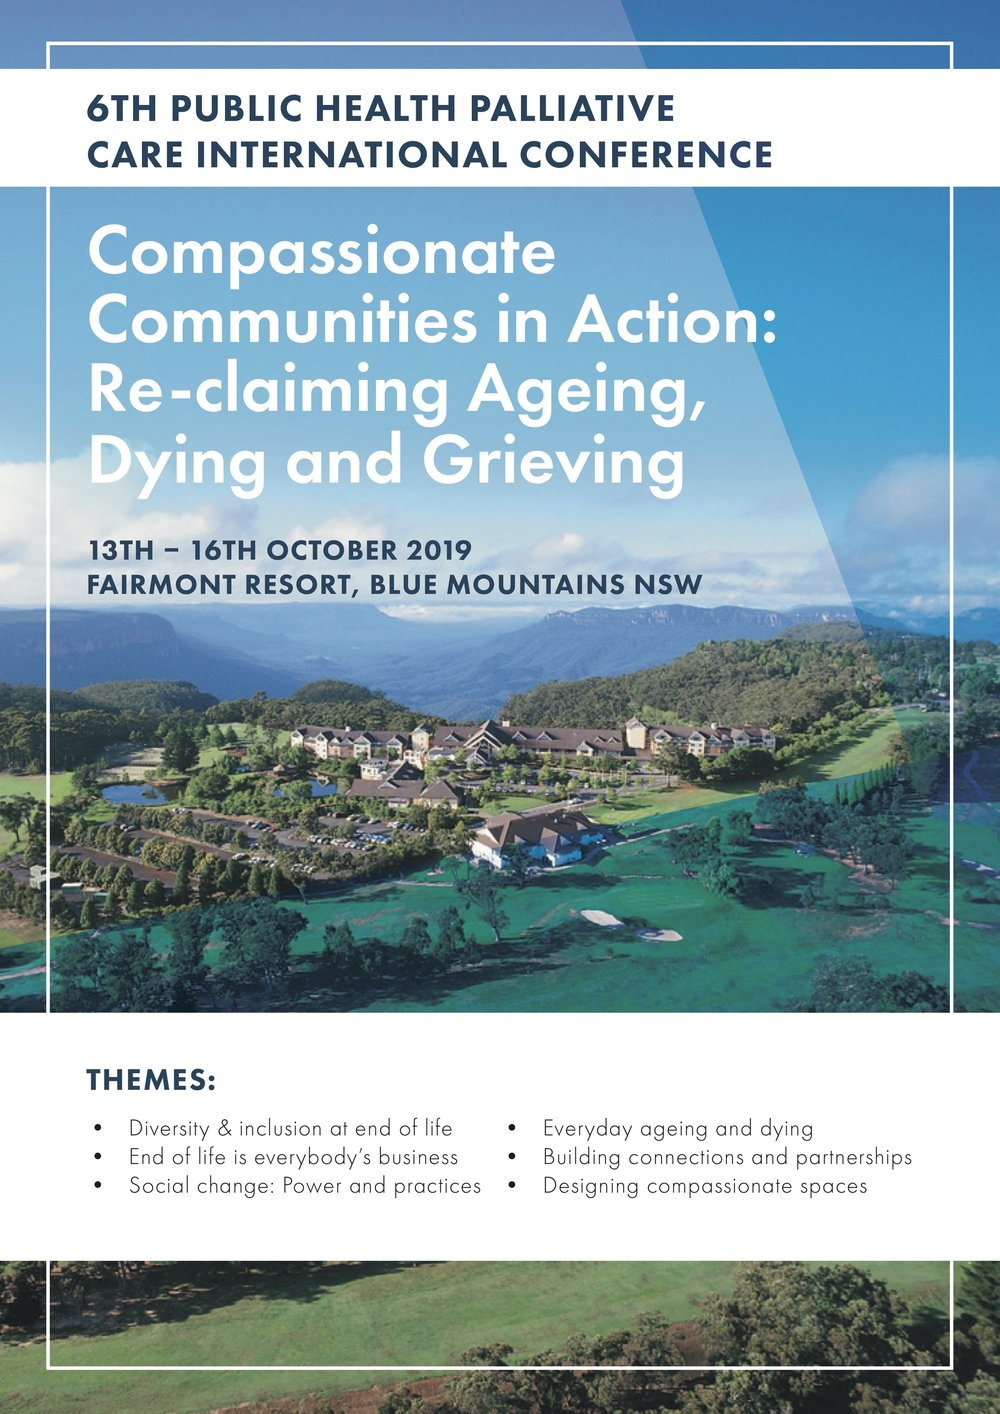 6th Public Health Palliative Care International Conference - Compassionate Communities in Action: Re-claiming Aging, Dying and Grieving13th – 16th October 2019Fairmont Resort, Blue Mountains NSW